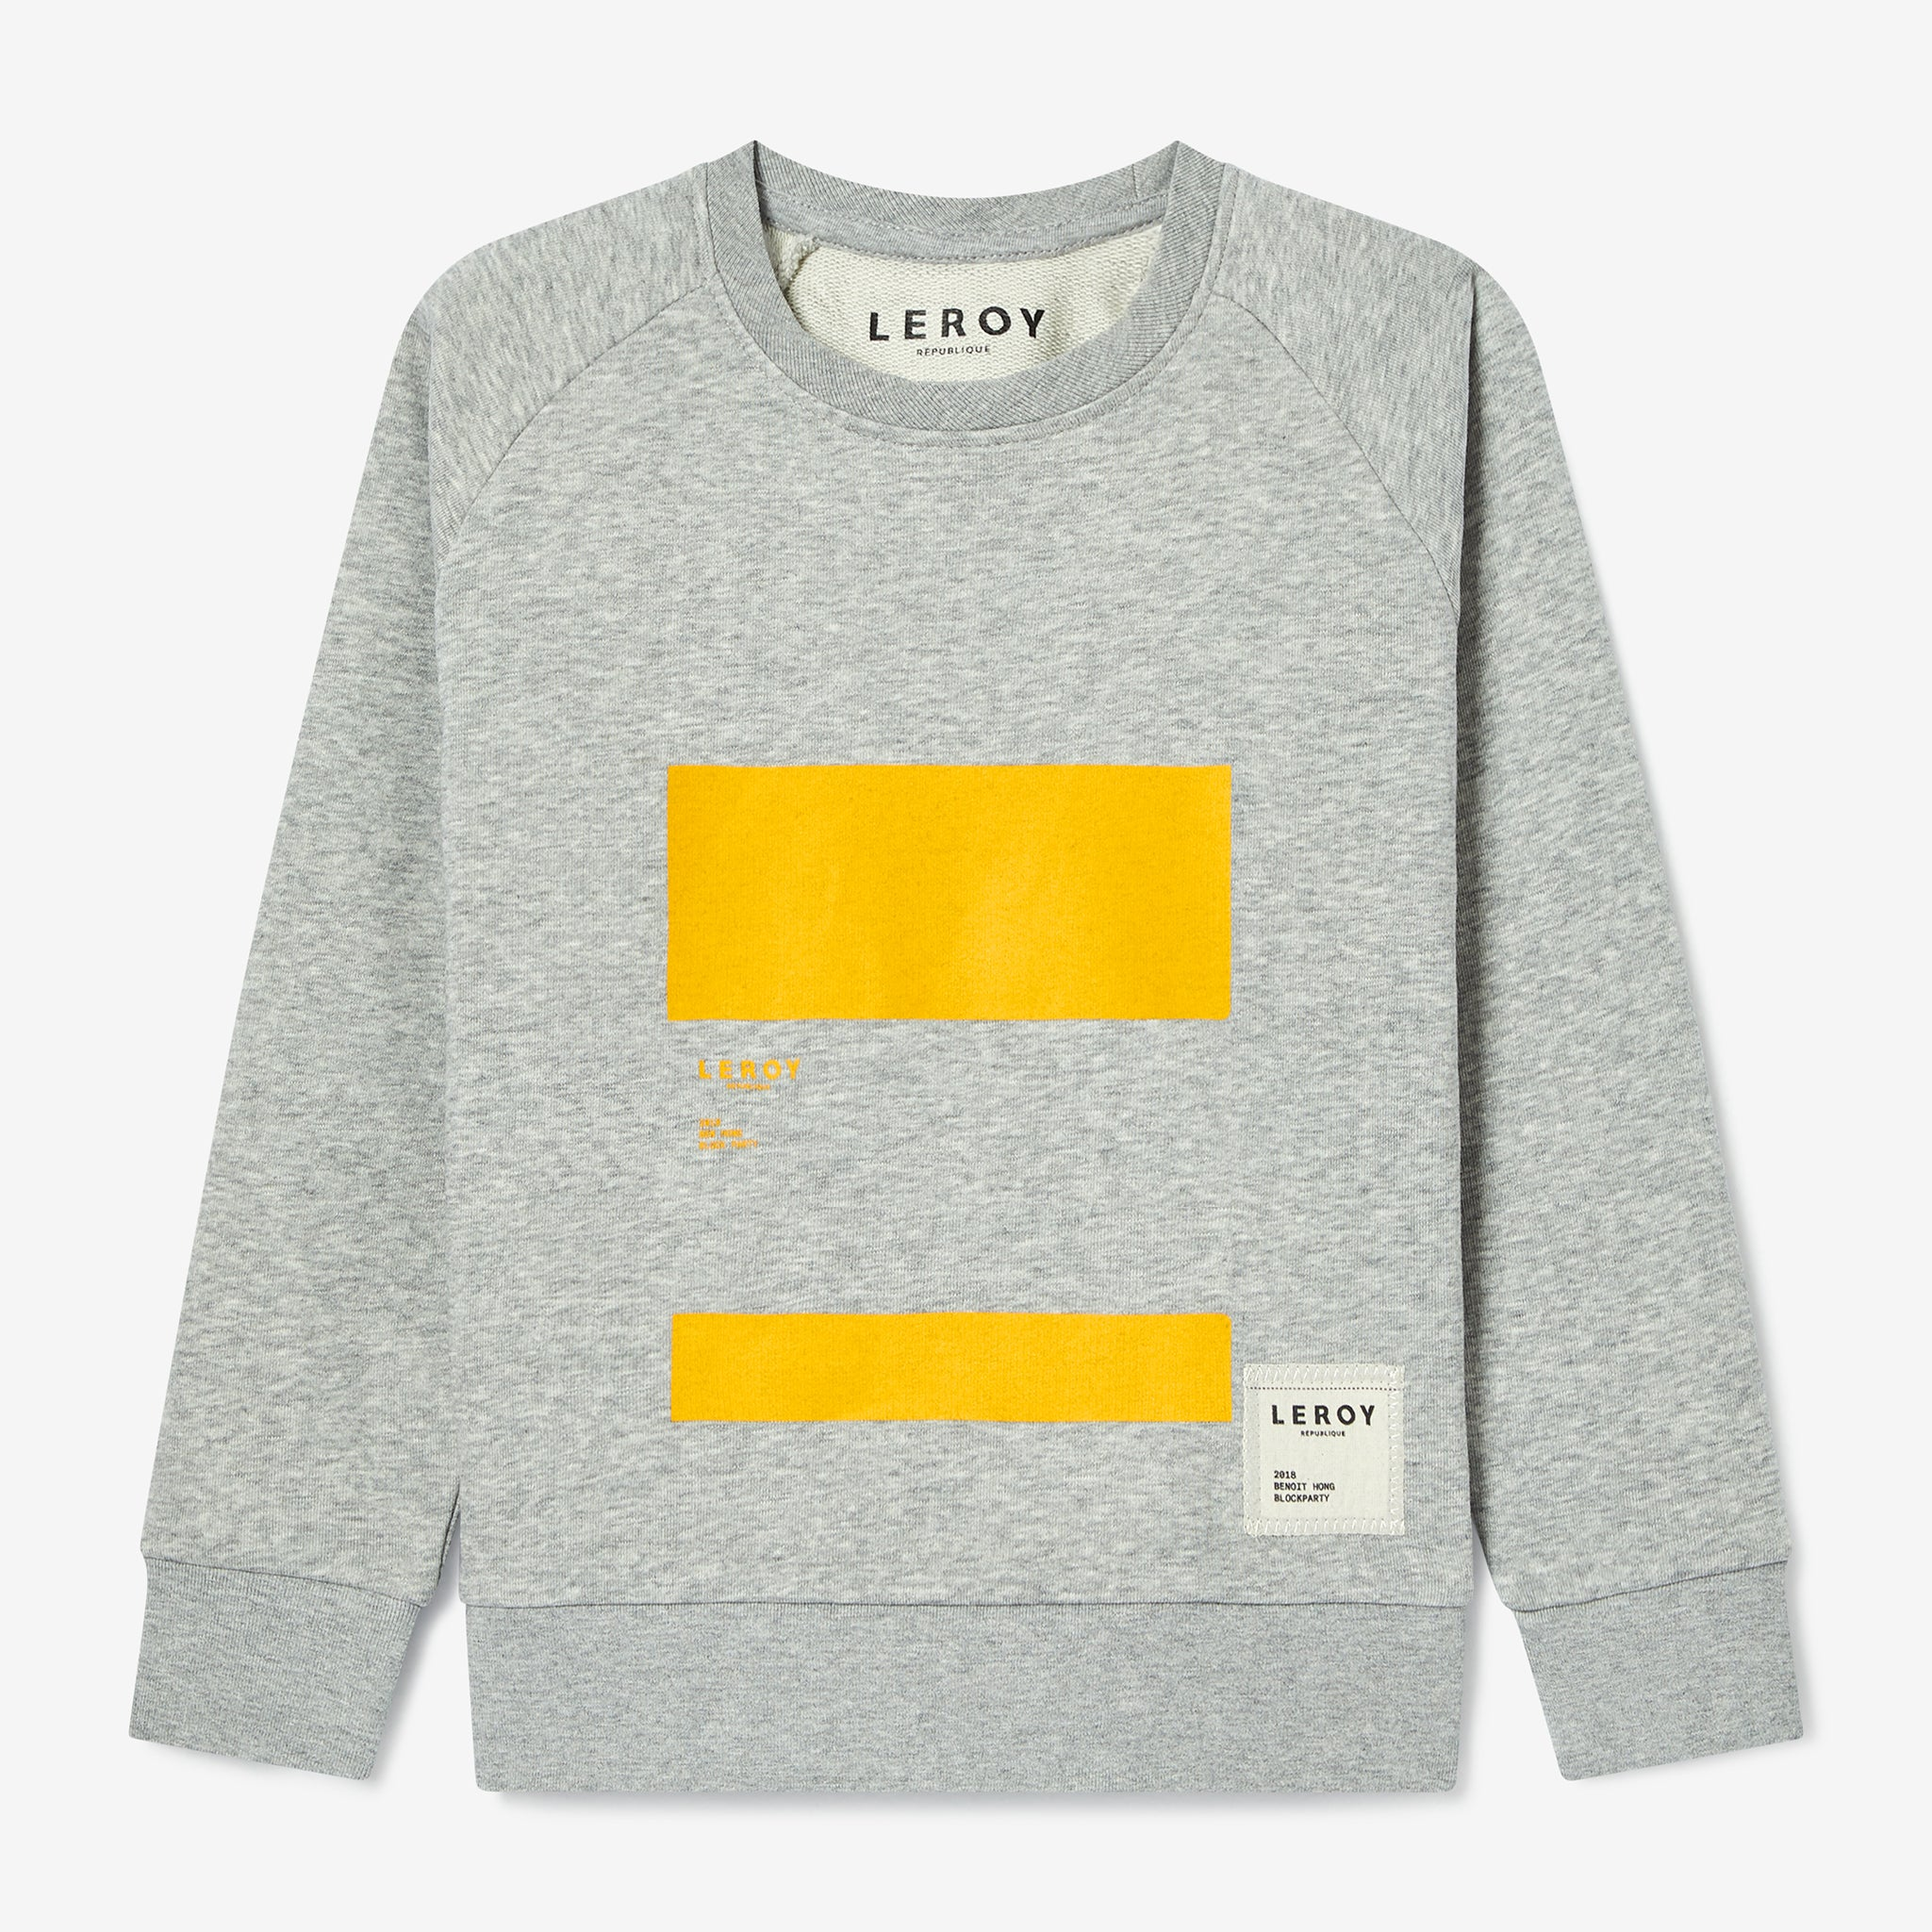 Ledge kid warm yellow crew neck